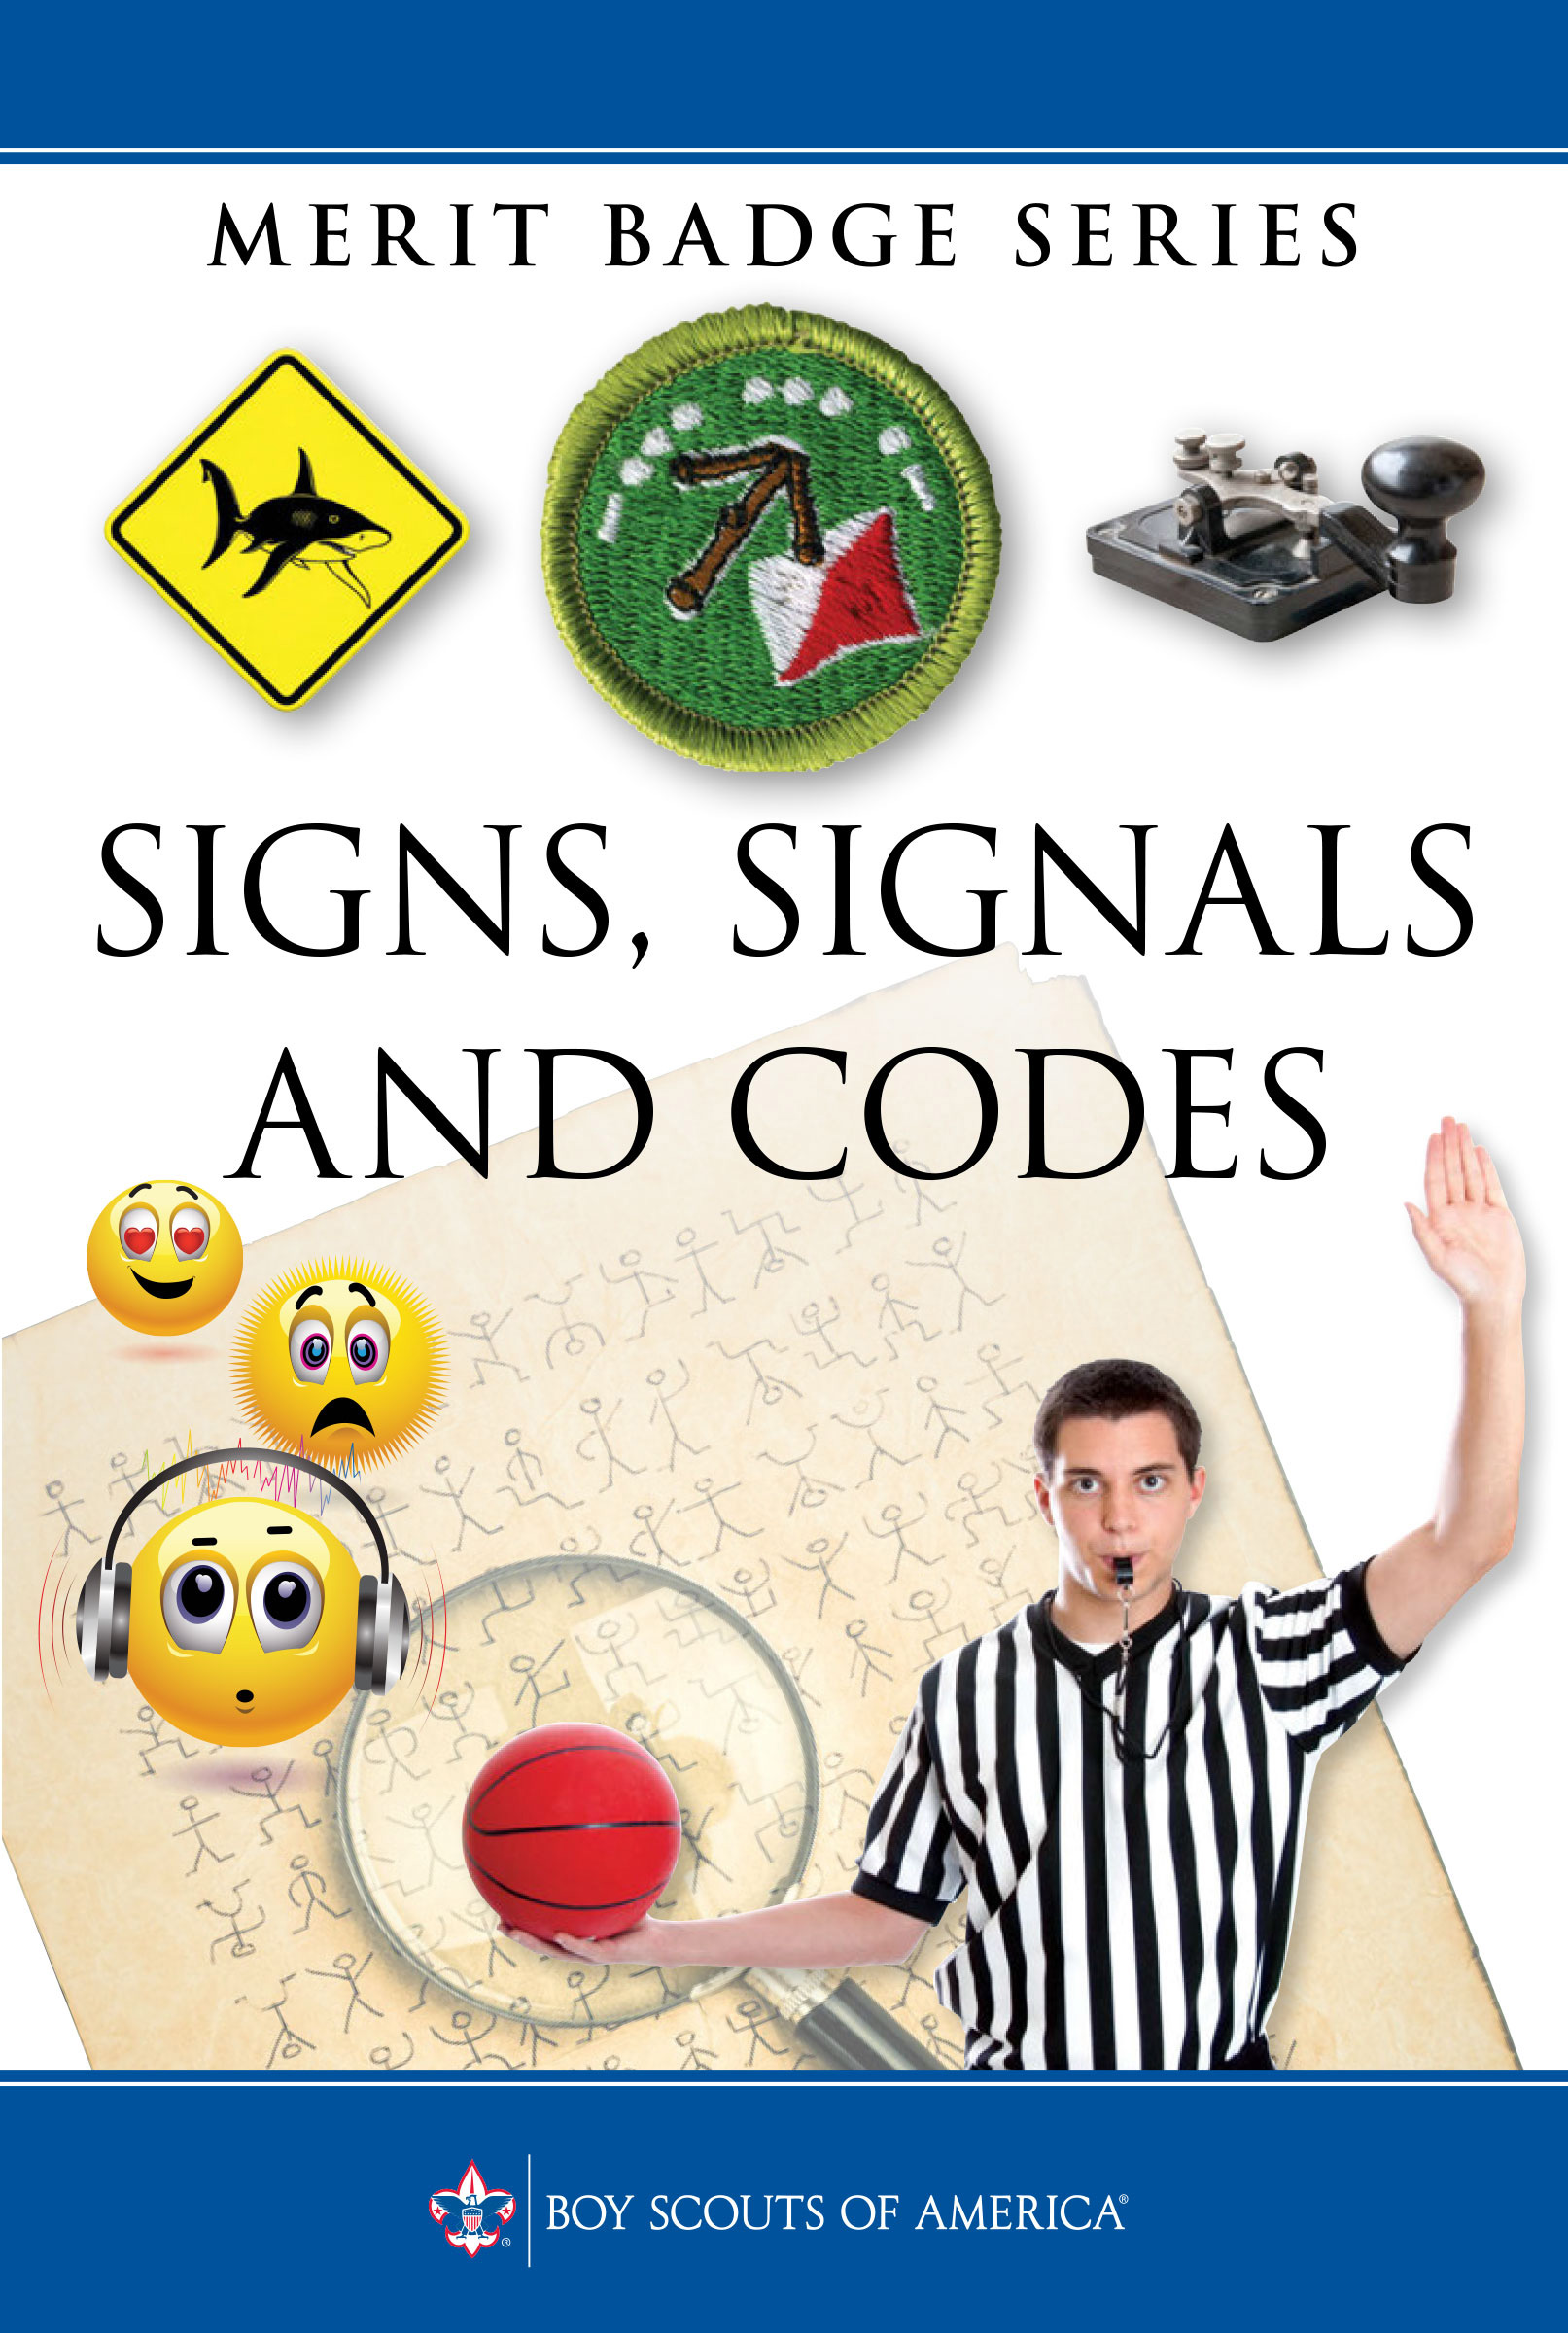 Signs-Signals-and-Codes-merit-badge-cover